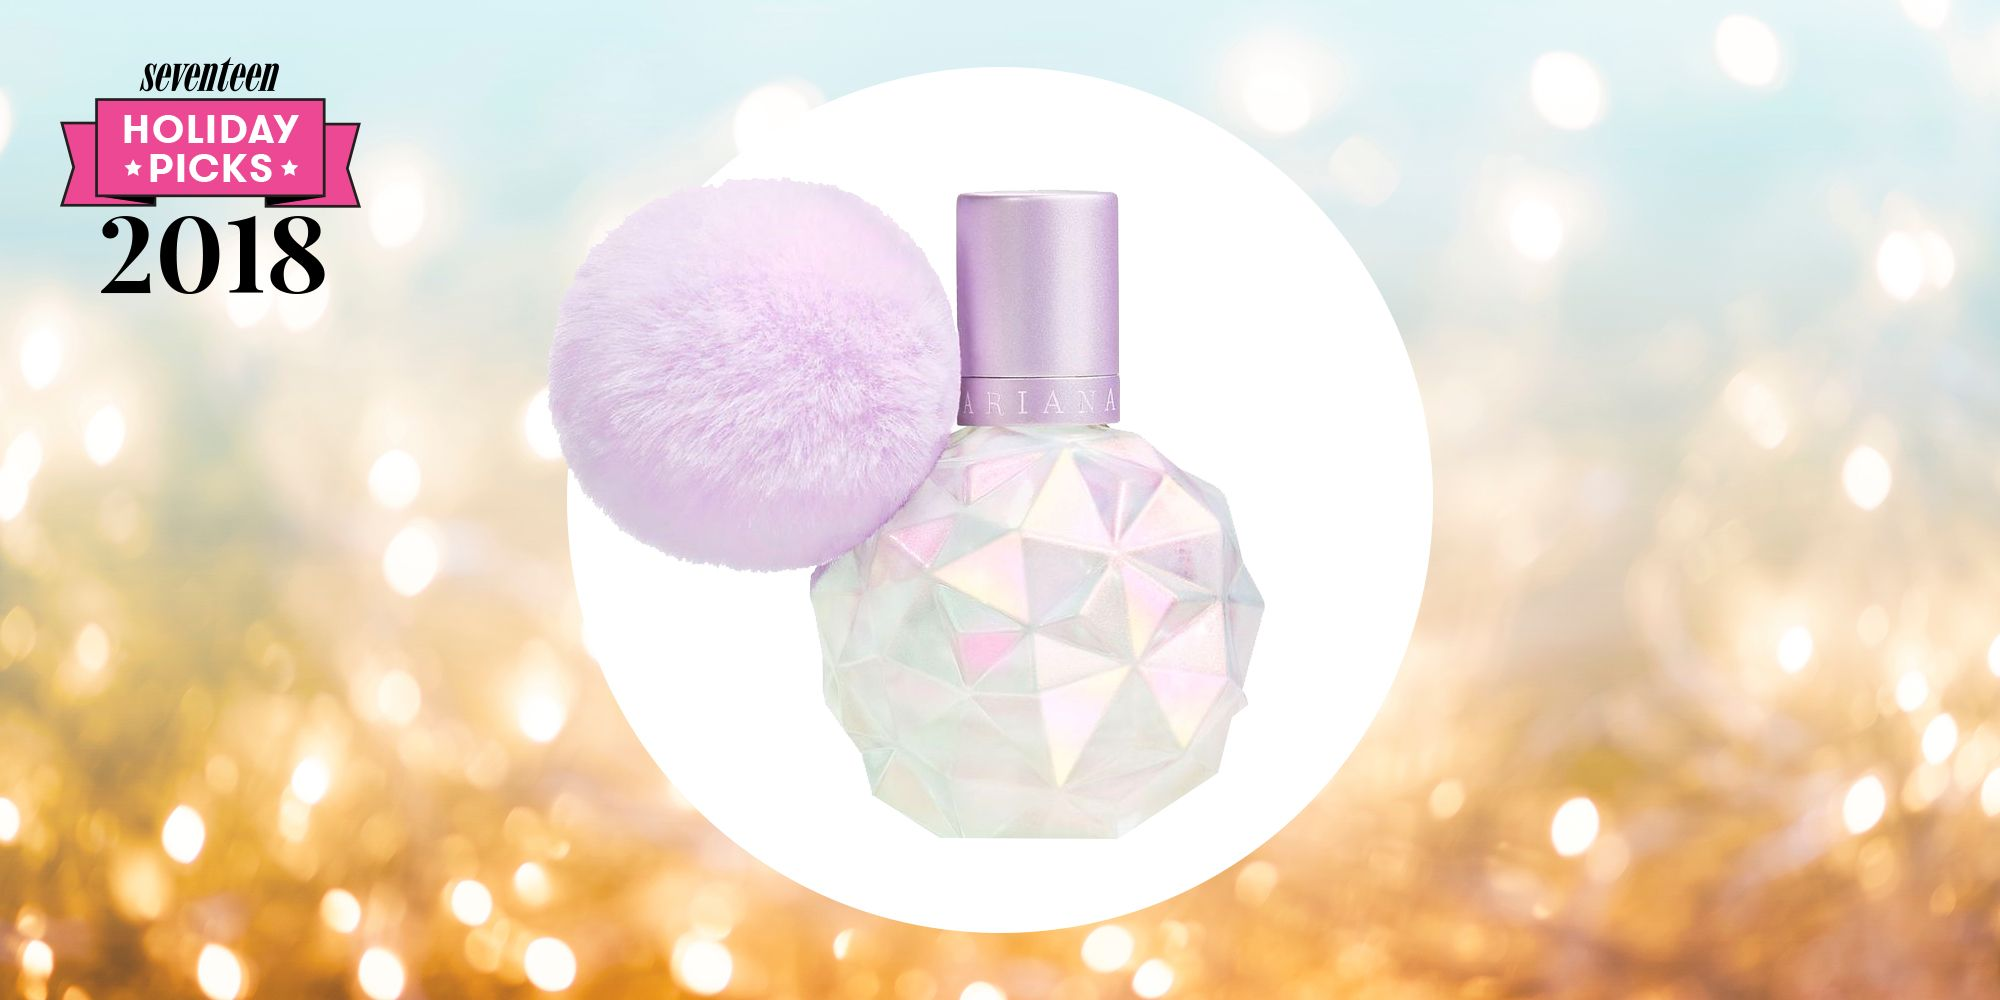 Christmas Beauty.19 Best Beauty Gifts For Christmas 2018 Gift Ideas For